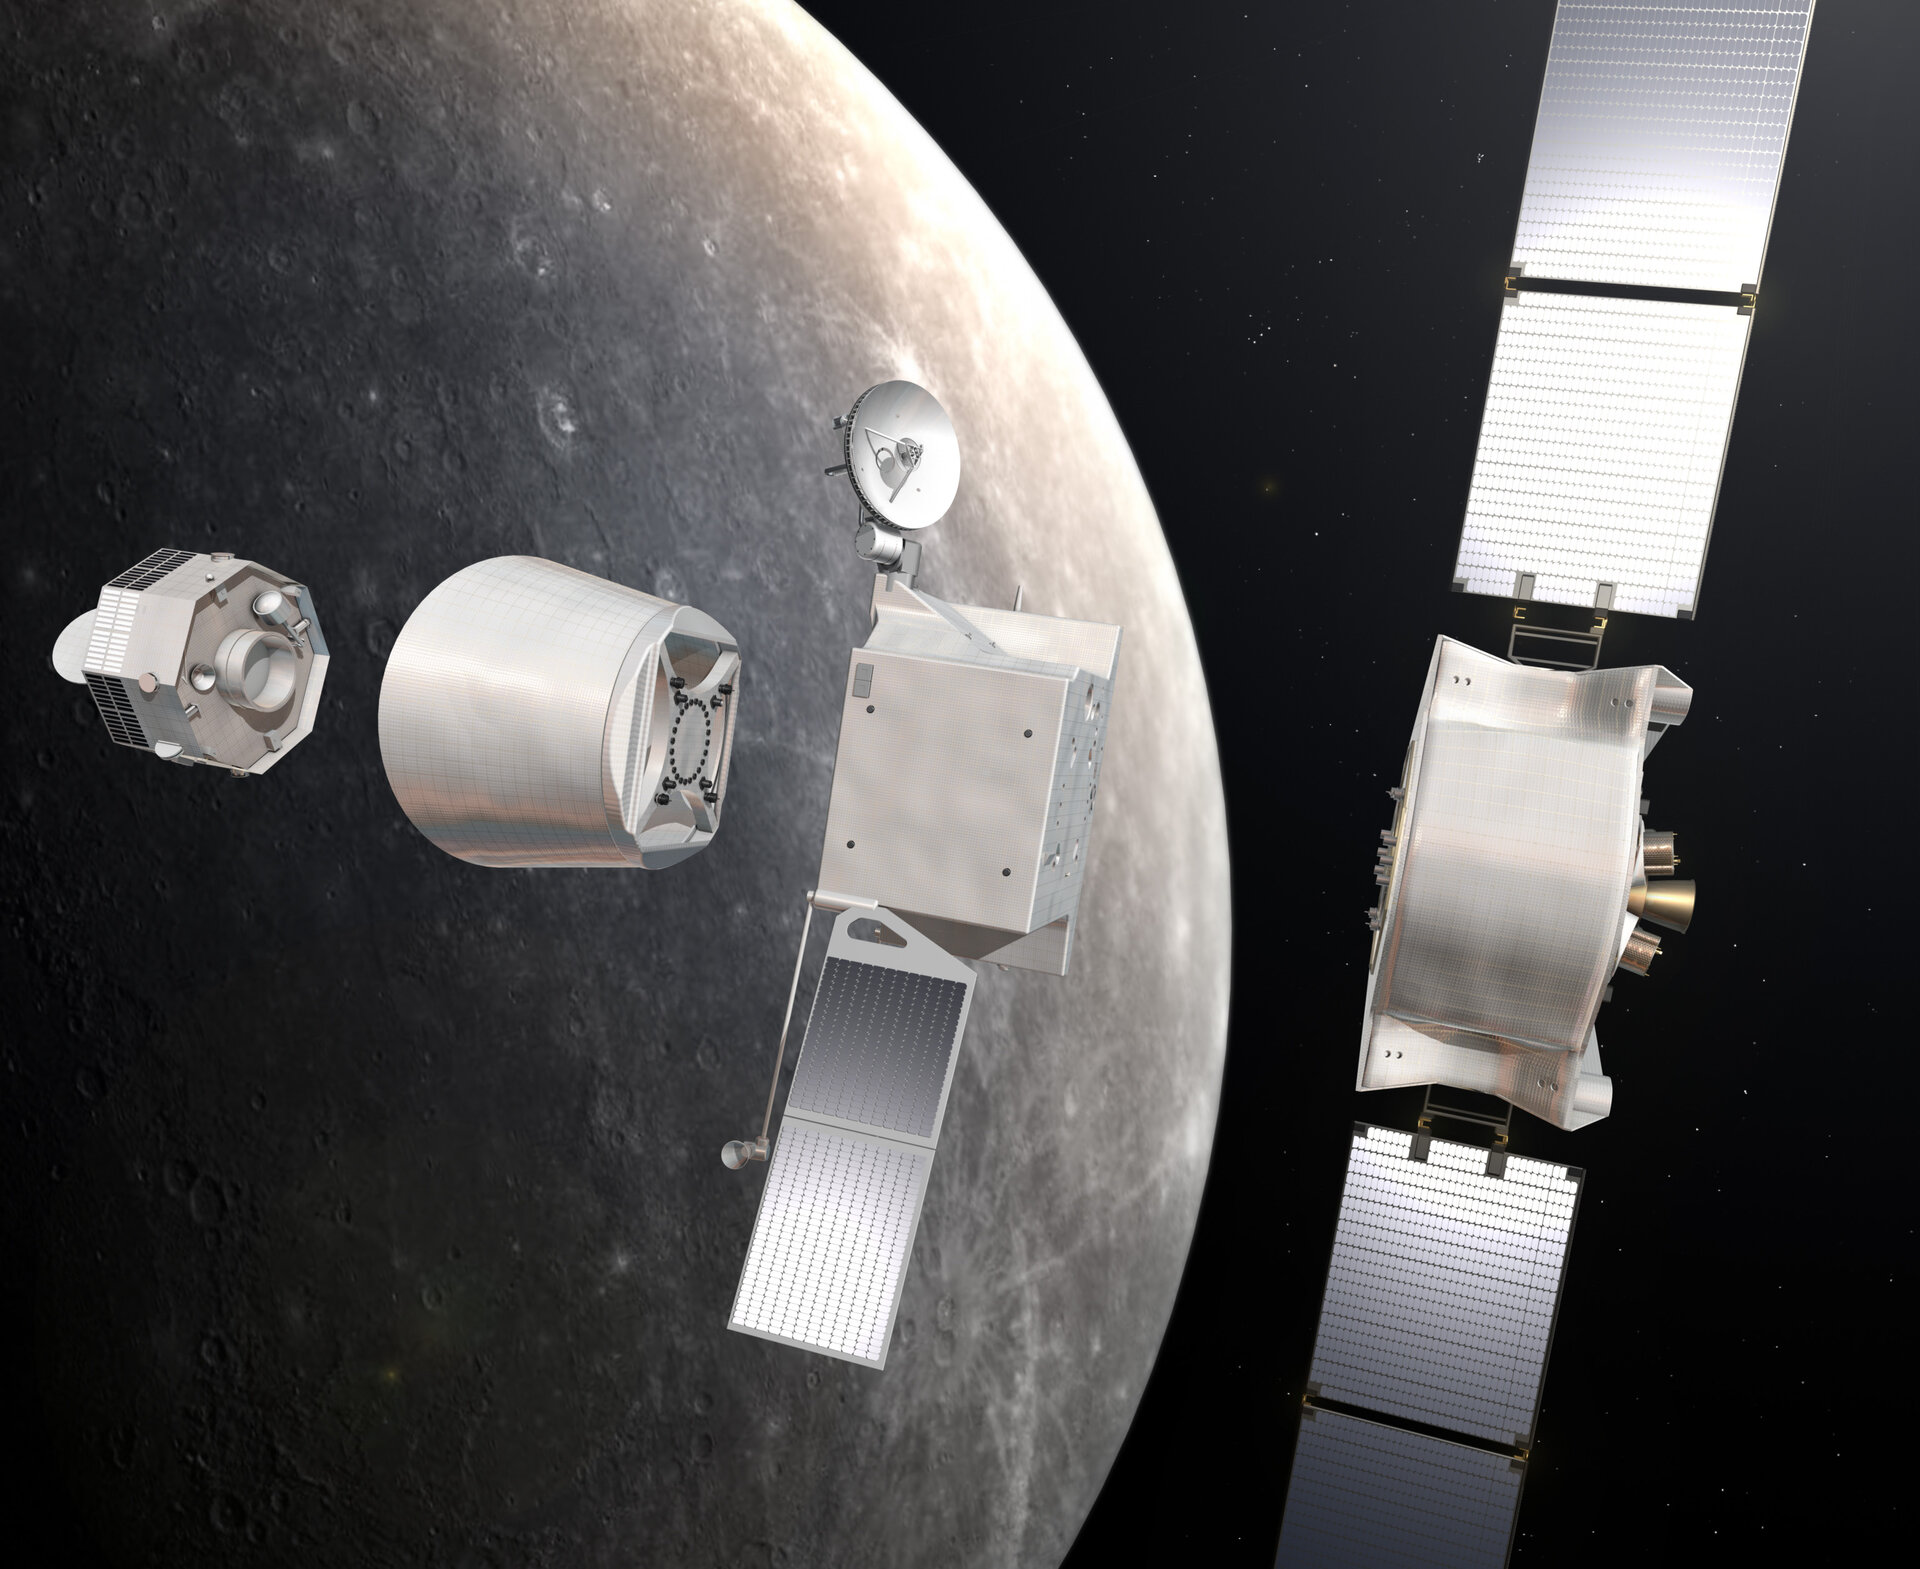 BepiColombo leaves the EarthBepiColombo's cruise components separate at Mercury